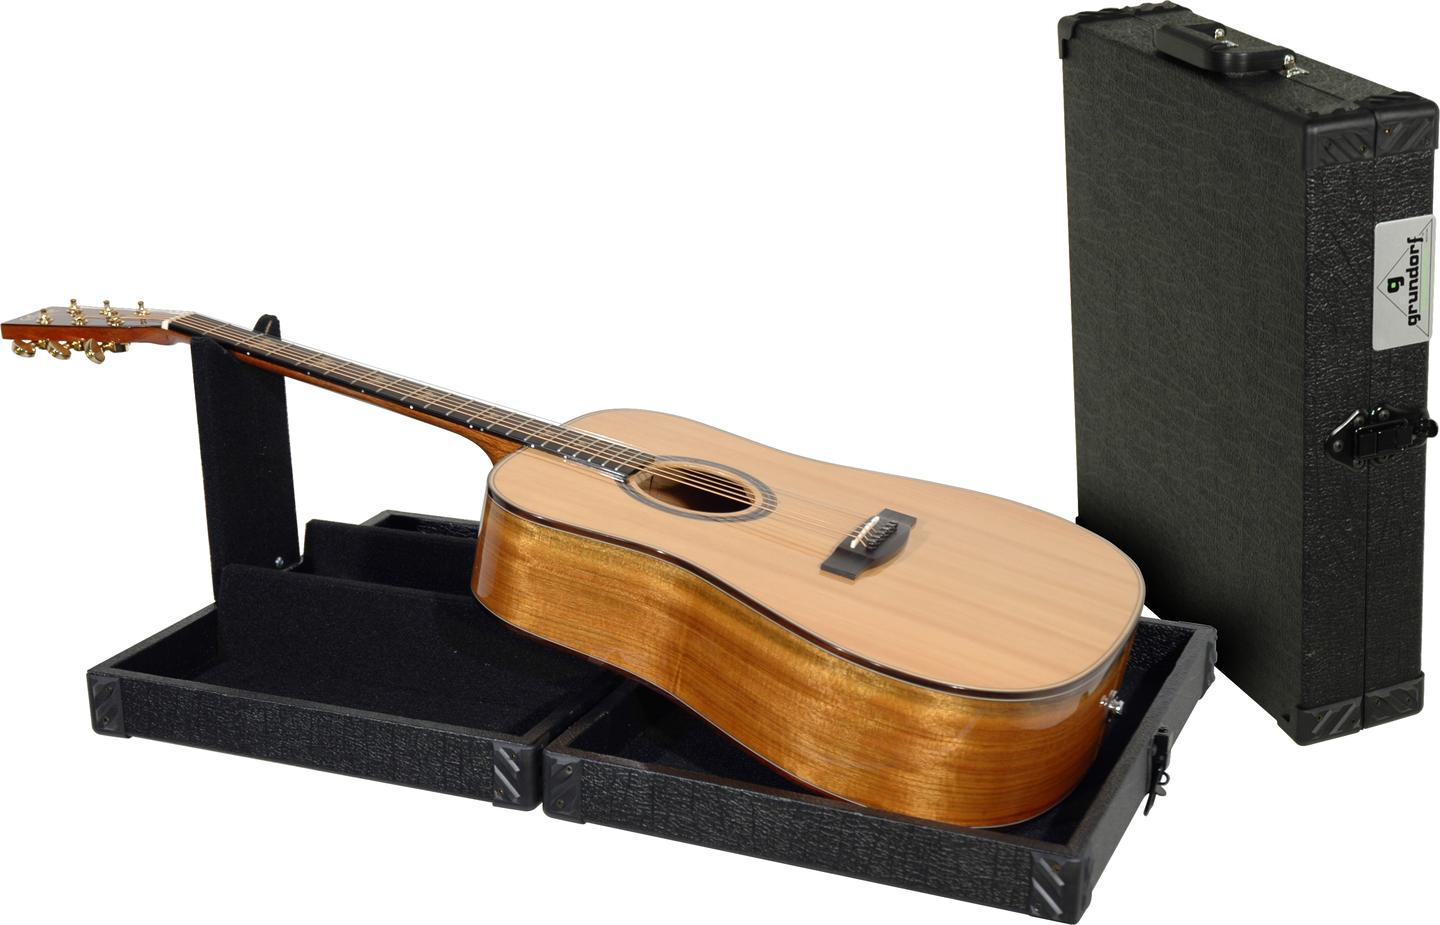 The compact and portable GMT-004 guitar maintenance table from Grundorf